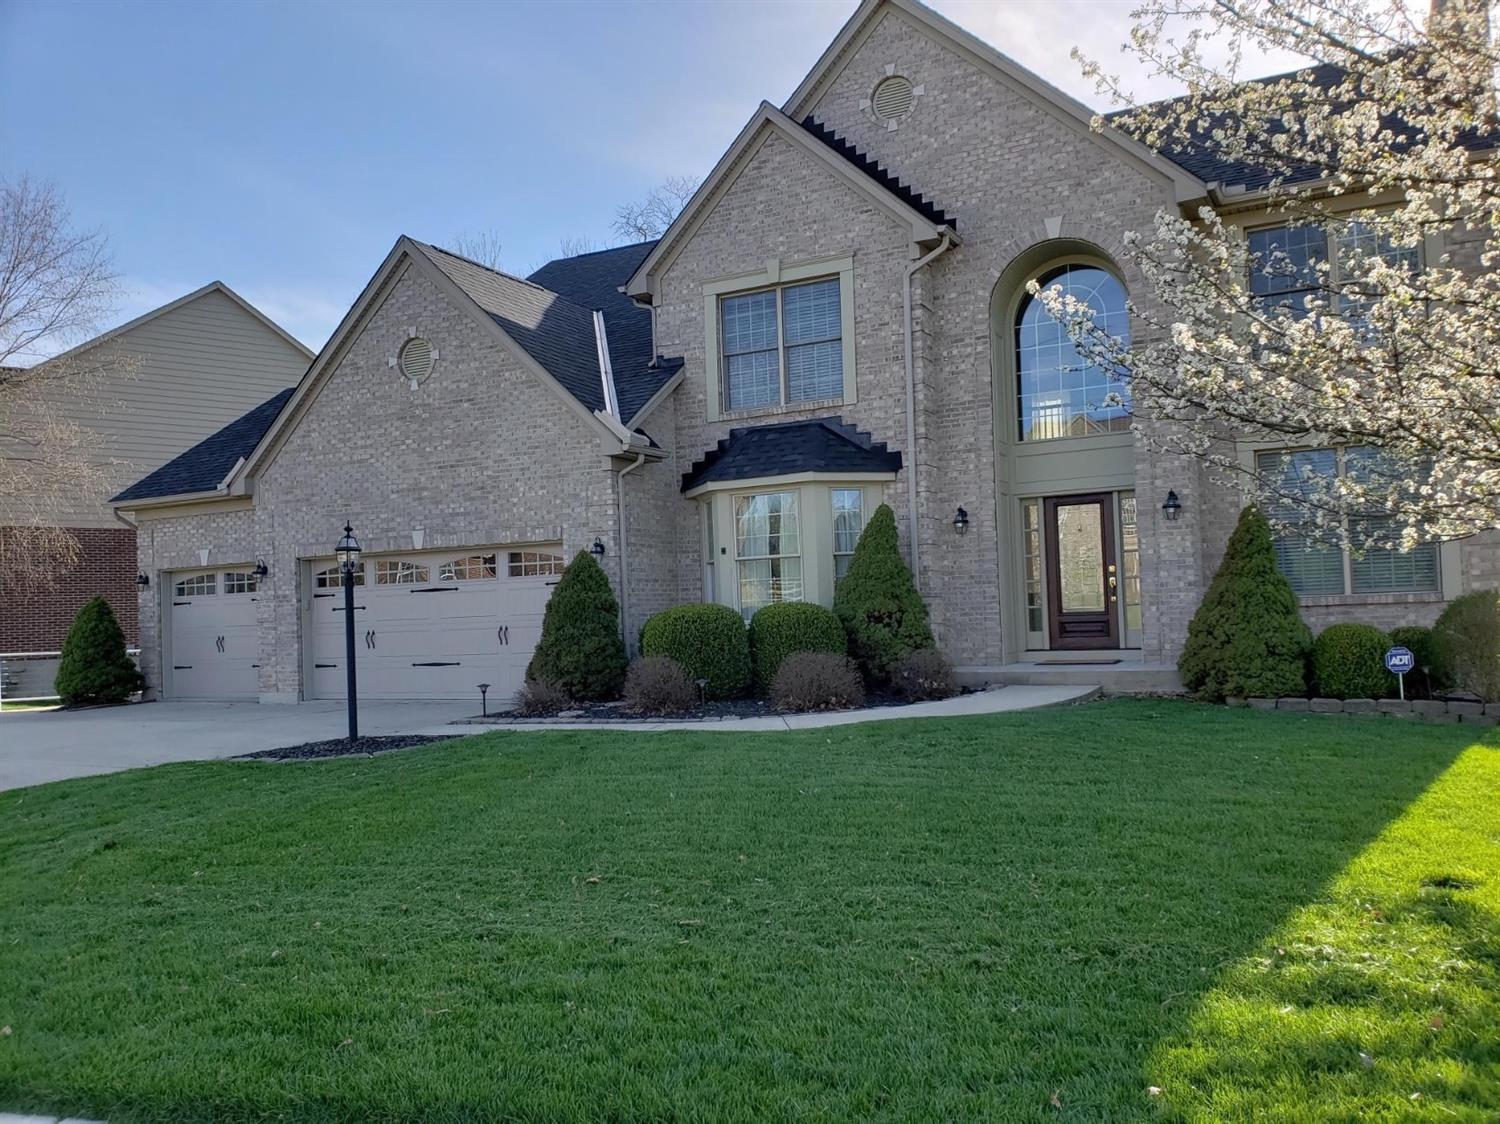 2221 Endovalley Dr Anderson Twp., OH